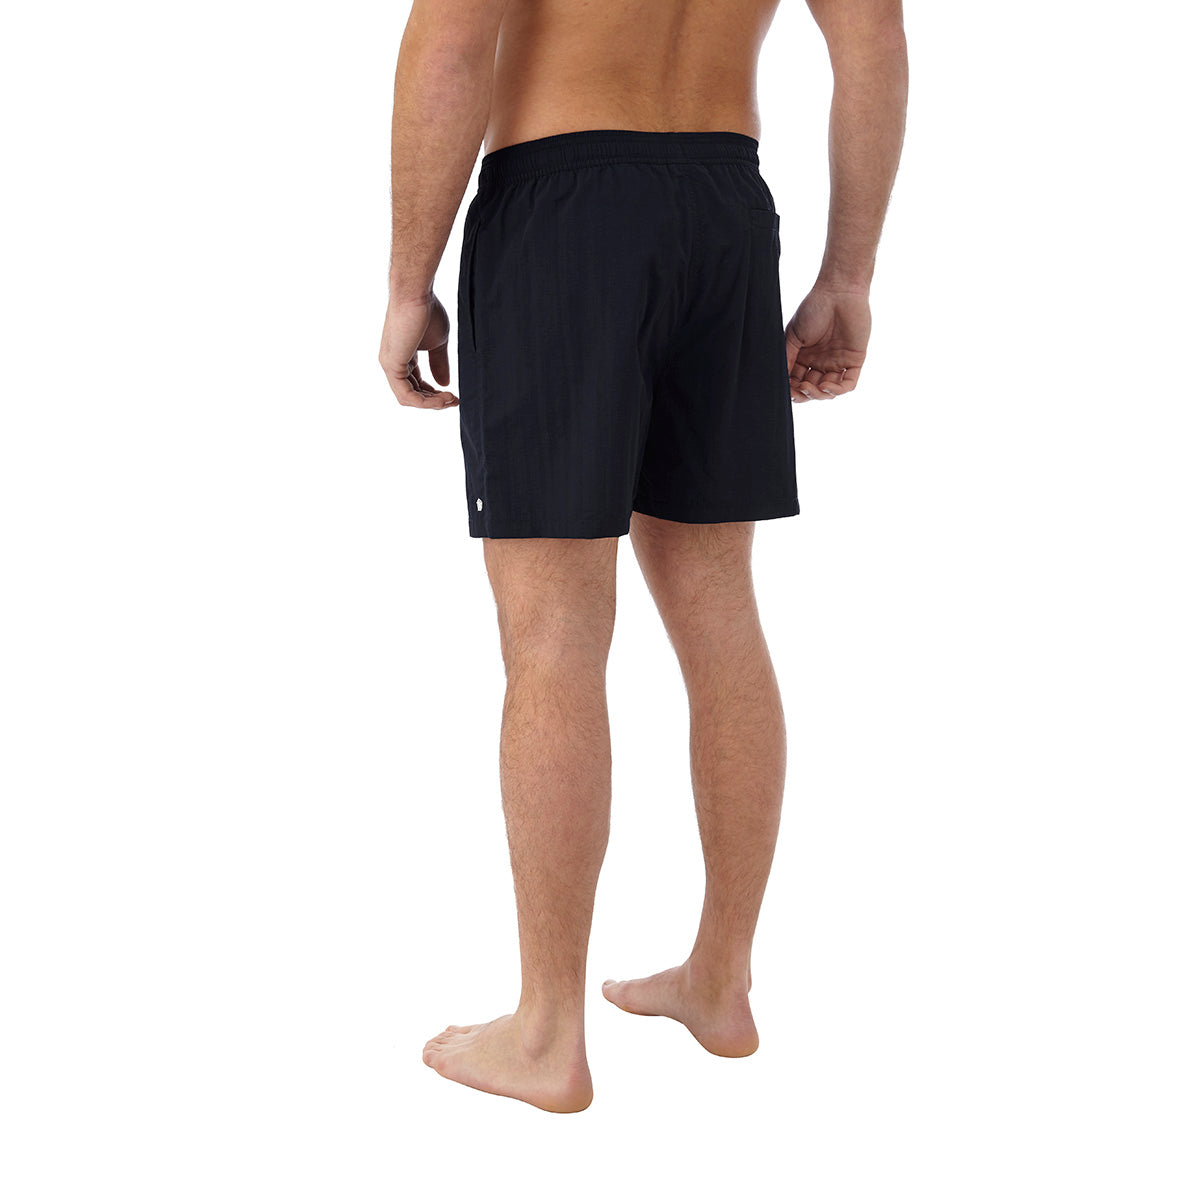 Vincent Mens Swimshorts - Navy image 4